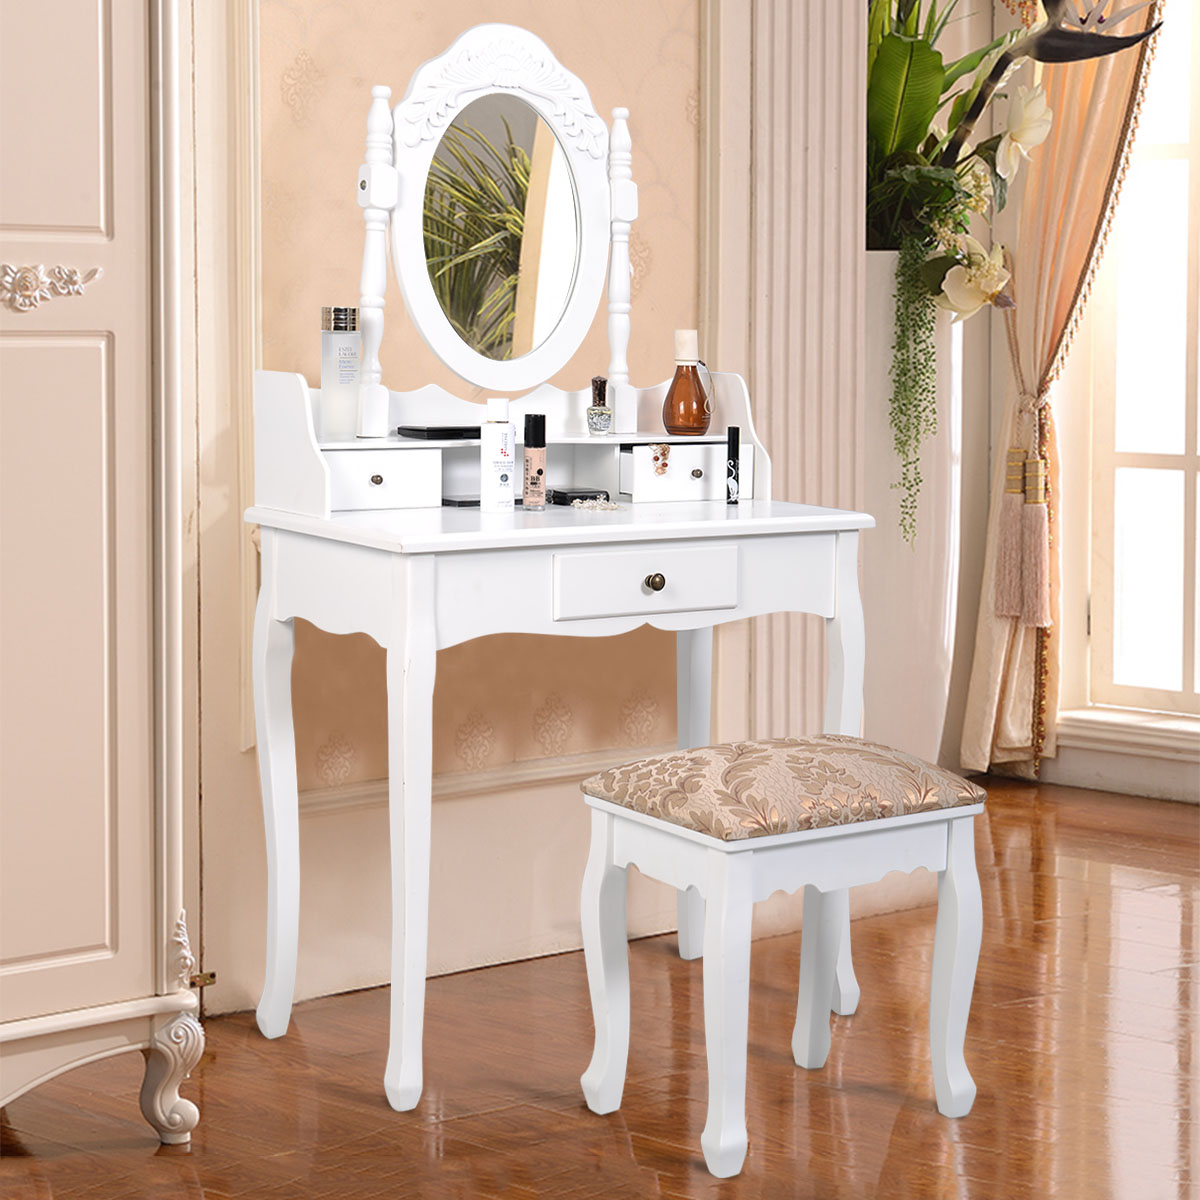 Costway Vanity Table Jewelry Makeup Desk Bench Dresser w/ Stool 3 Drawer White